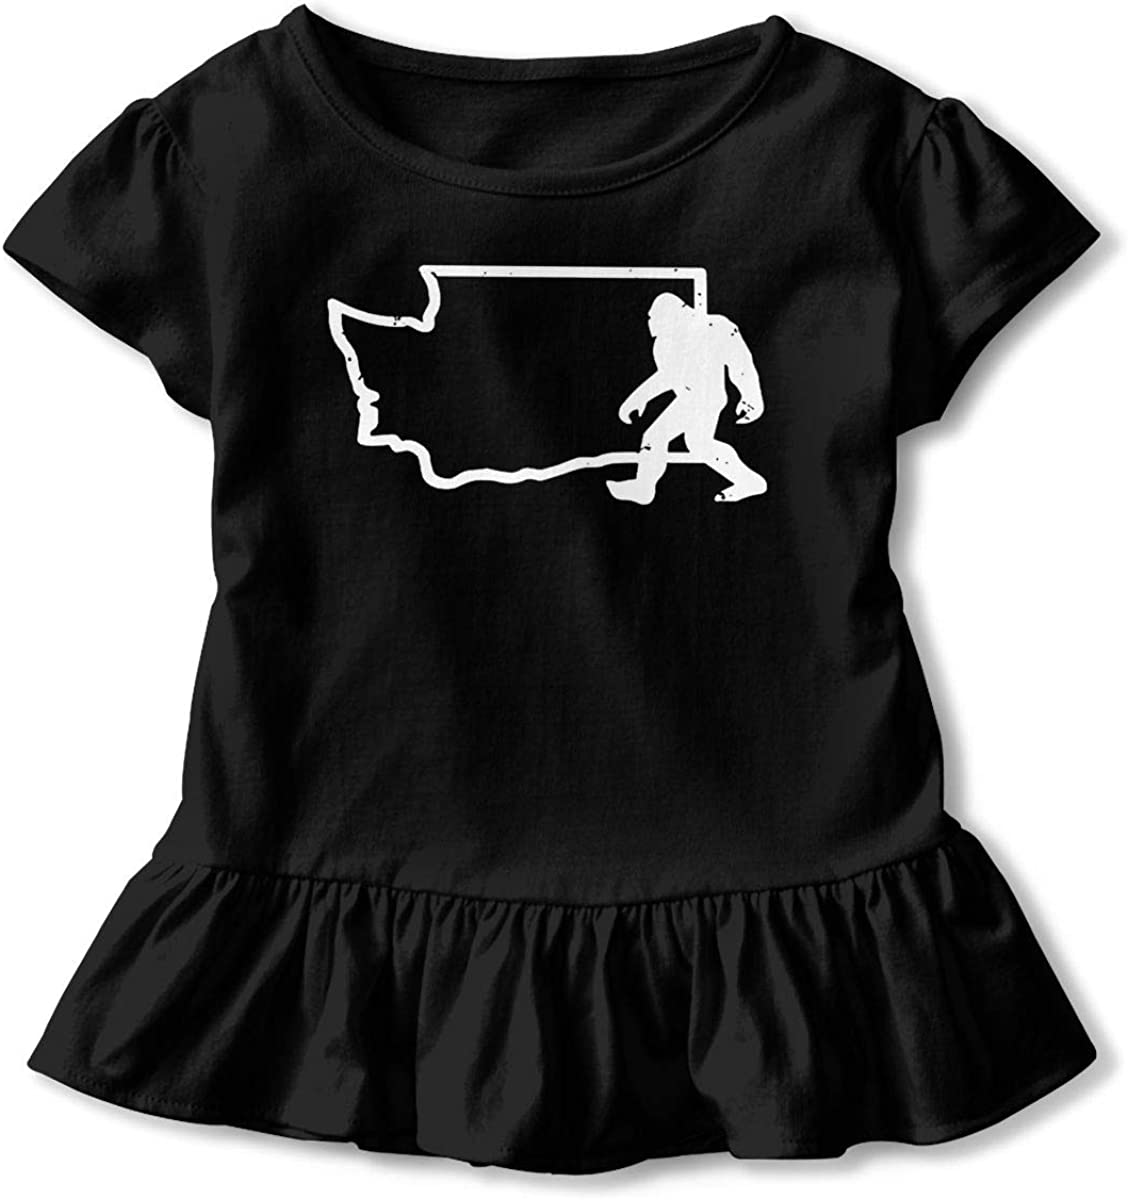 Not Available Washington State Bigfoot Sasquatch Shirt Baby Girls Ruffles Print Summer Clothes for 2-6 Years Old Baby